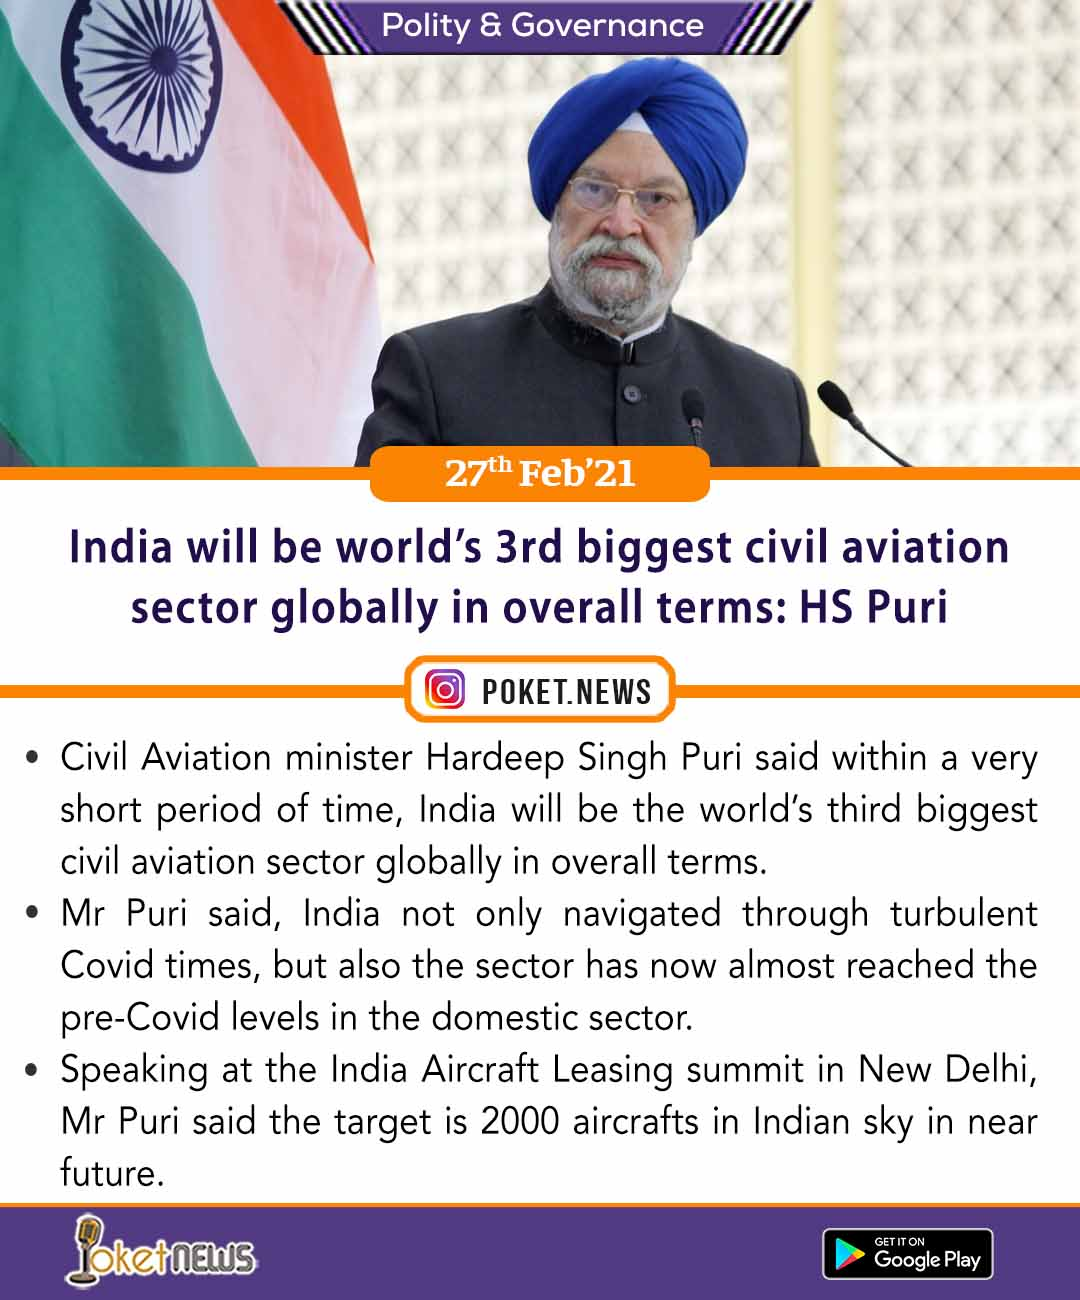 India will be world's 3rd biggest civil aviation sector globally in overall terms: HS Puri